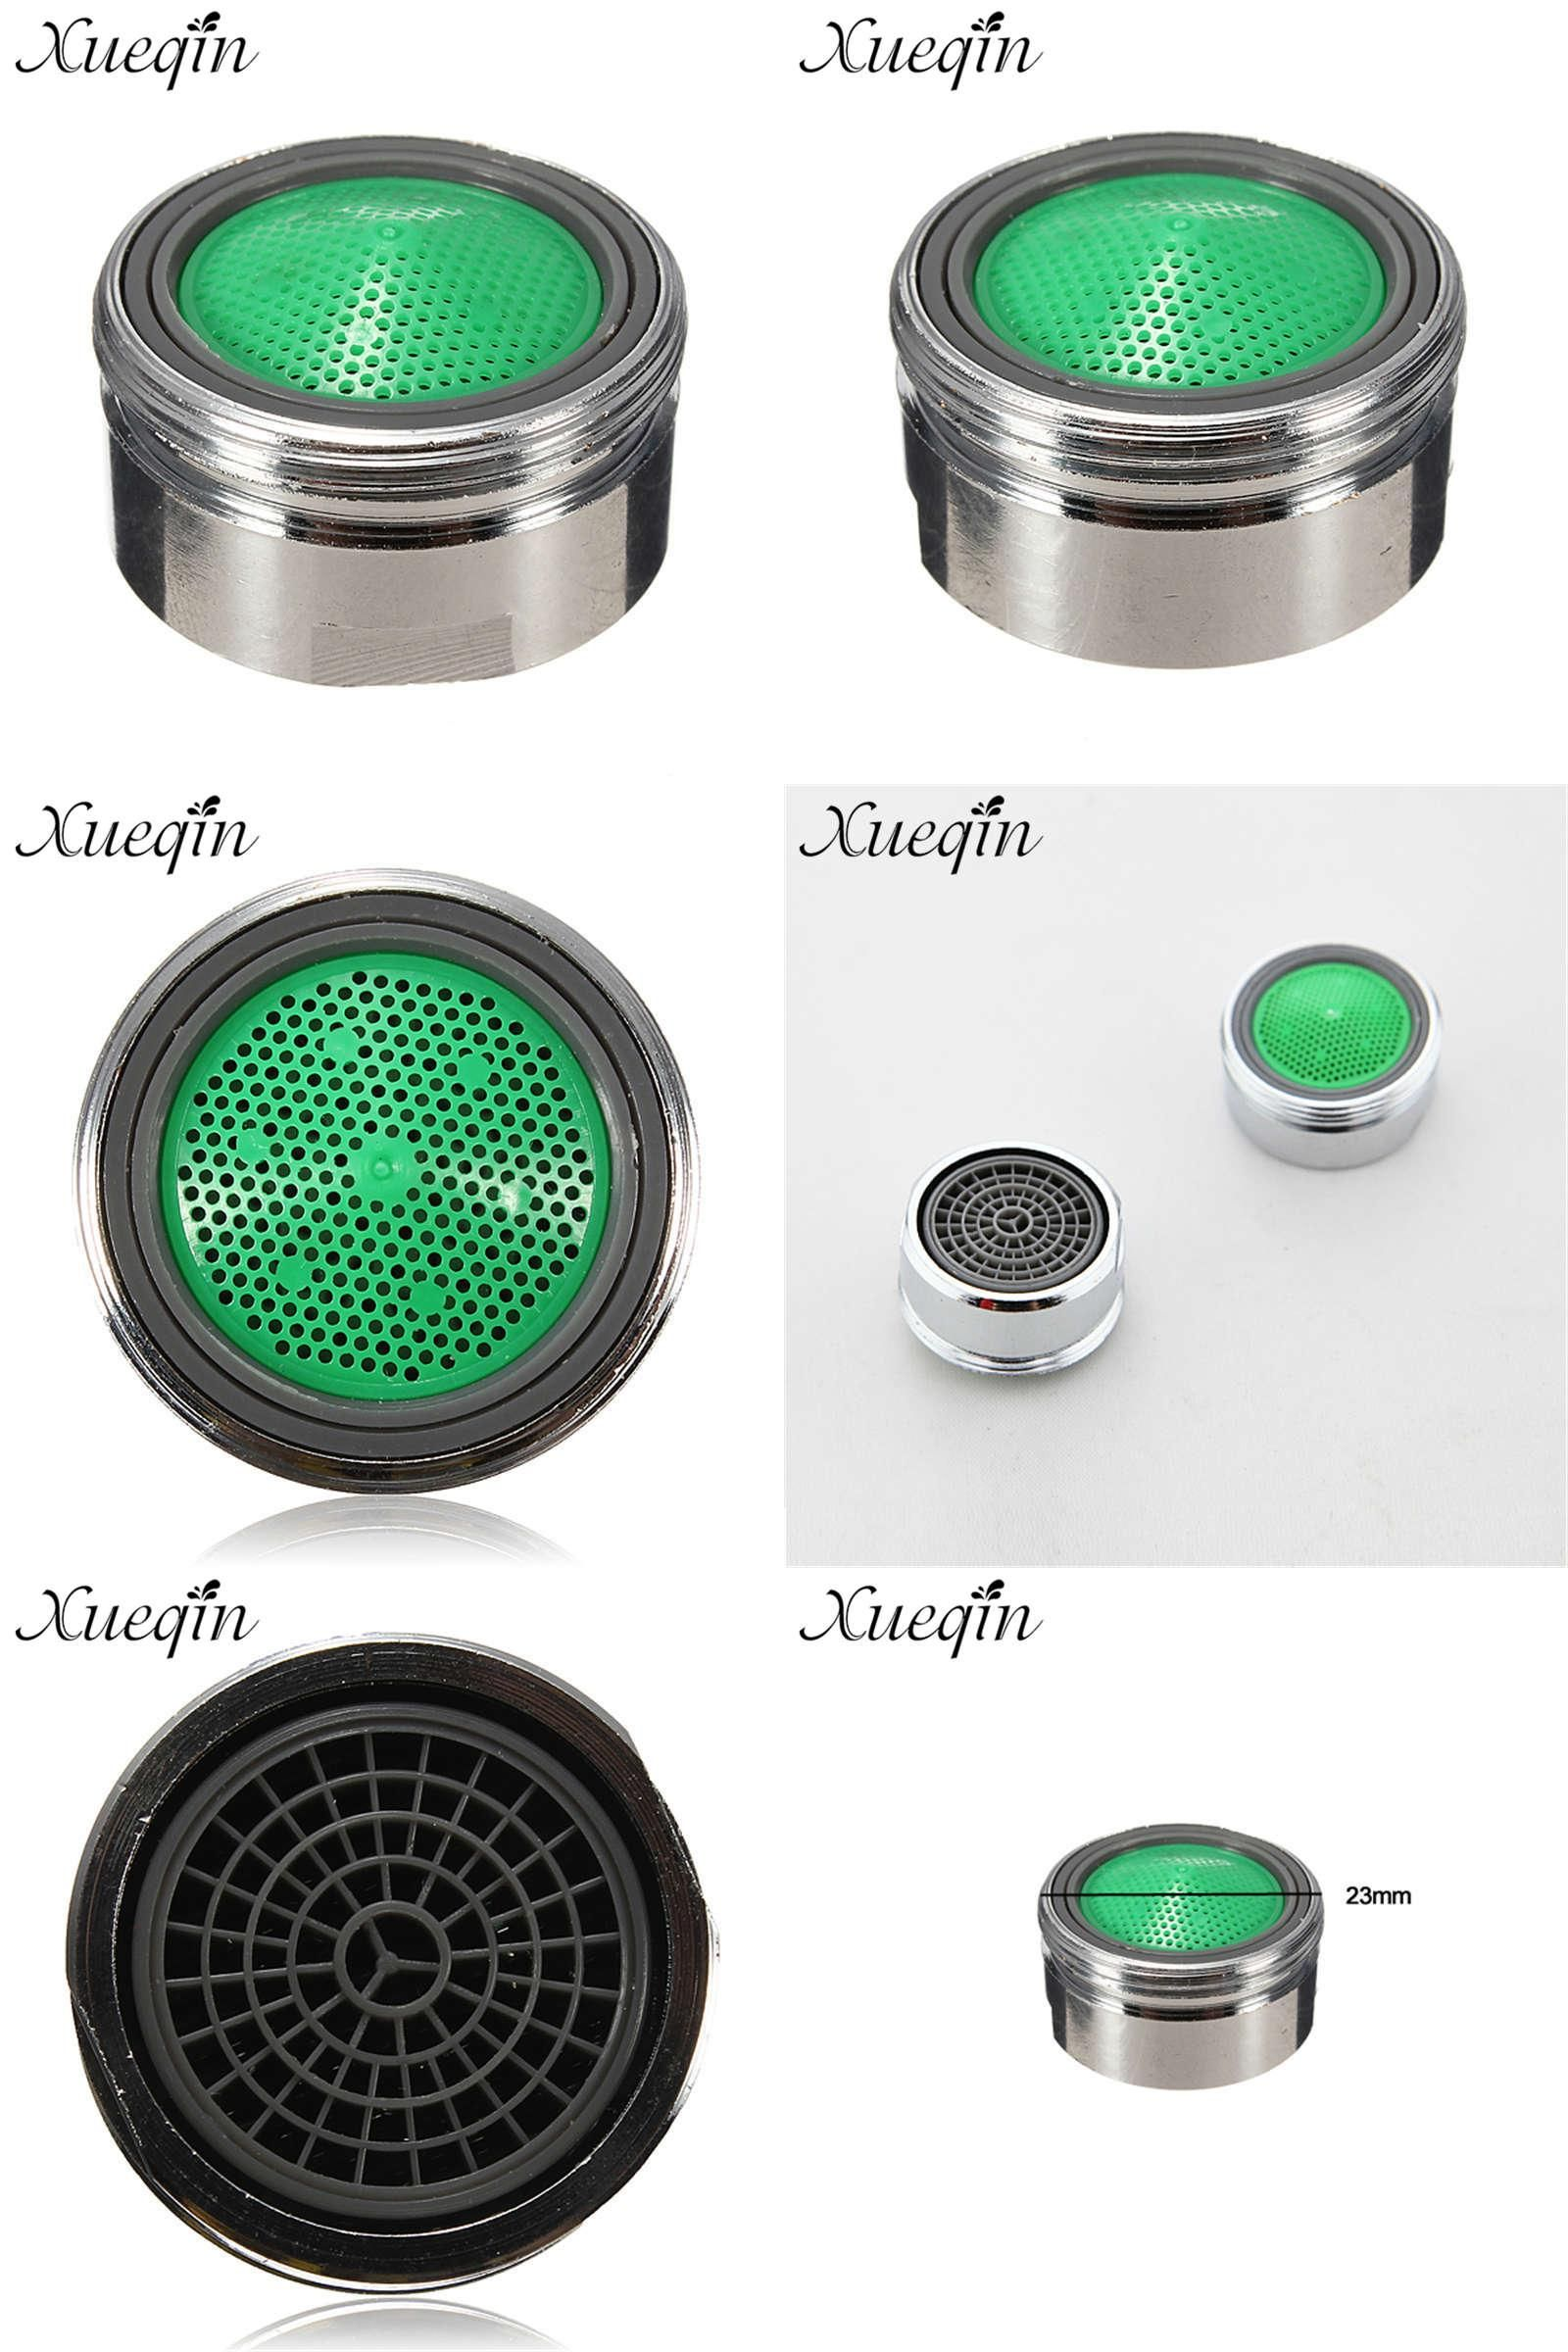 Visit To Buy Xueqin 23mm Male Connector Chrome Plated Brass Faucet Tap Aerator Water Saving Aerator Bathroom Brass Faucet Faucet Accessories Chrome Plating [ jpg ]